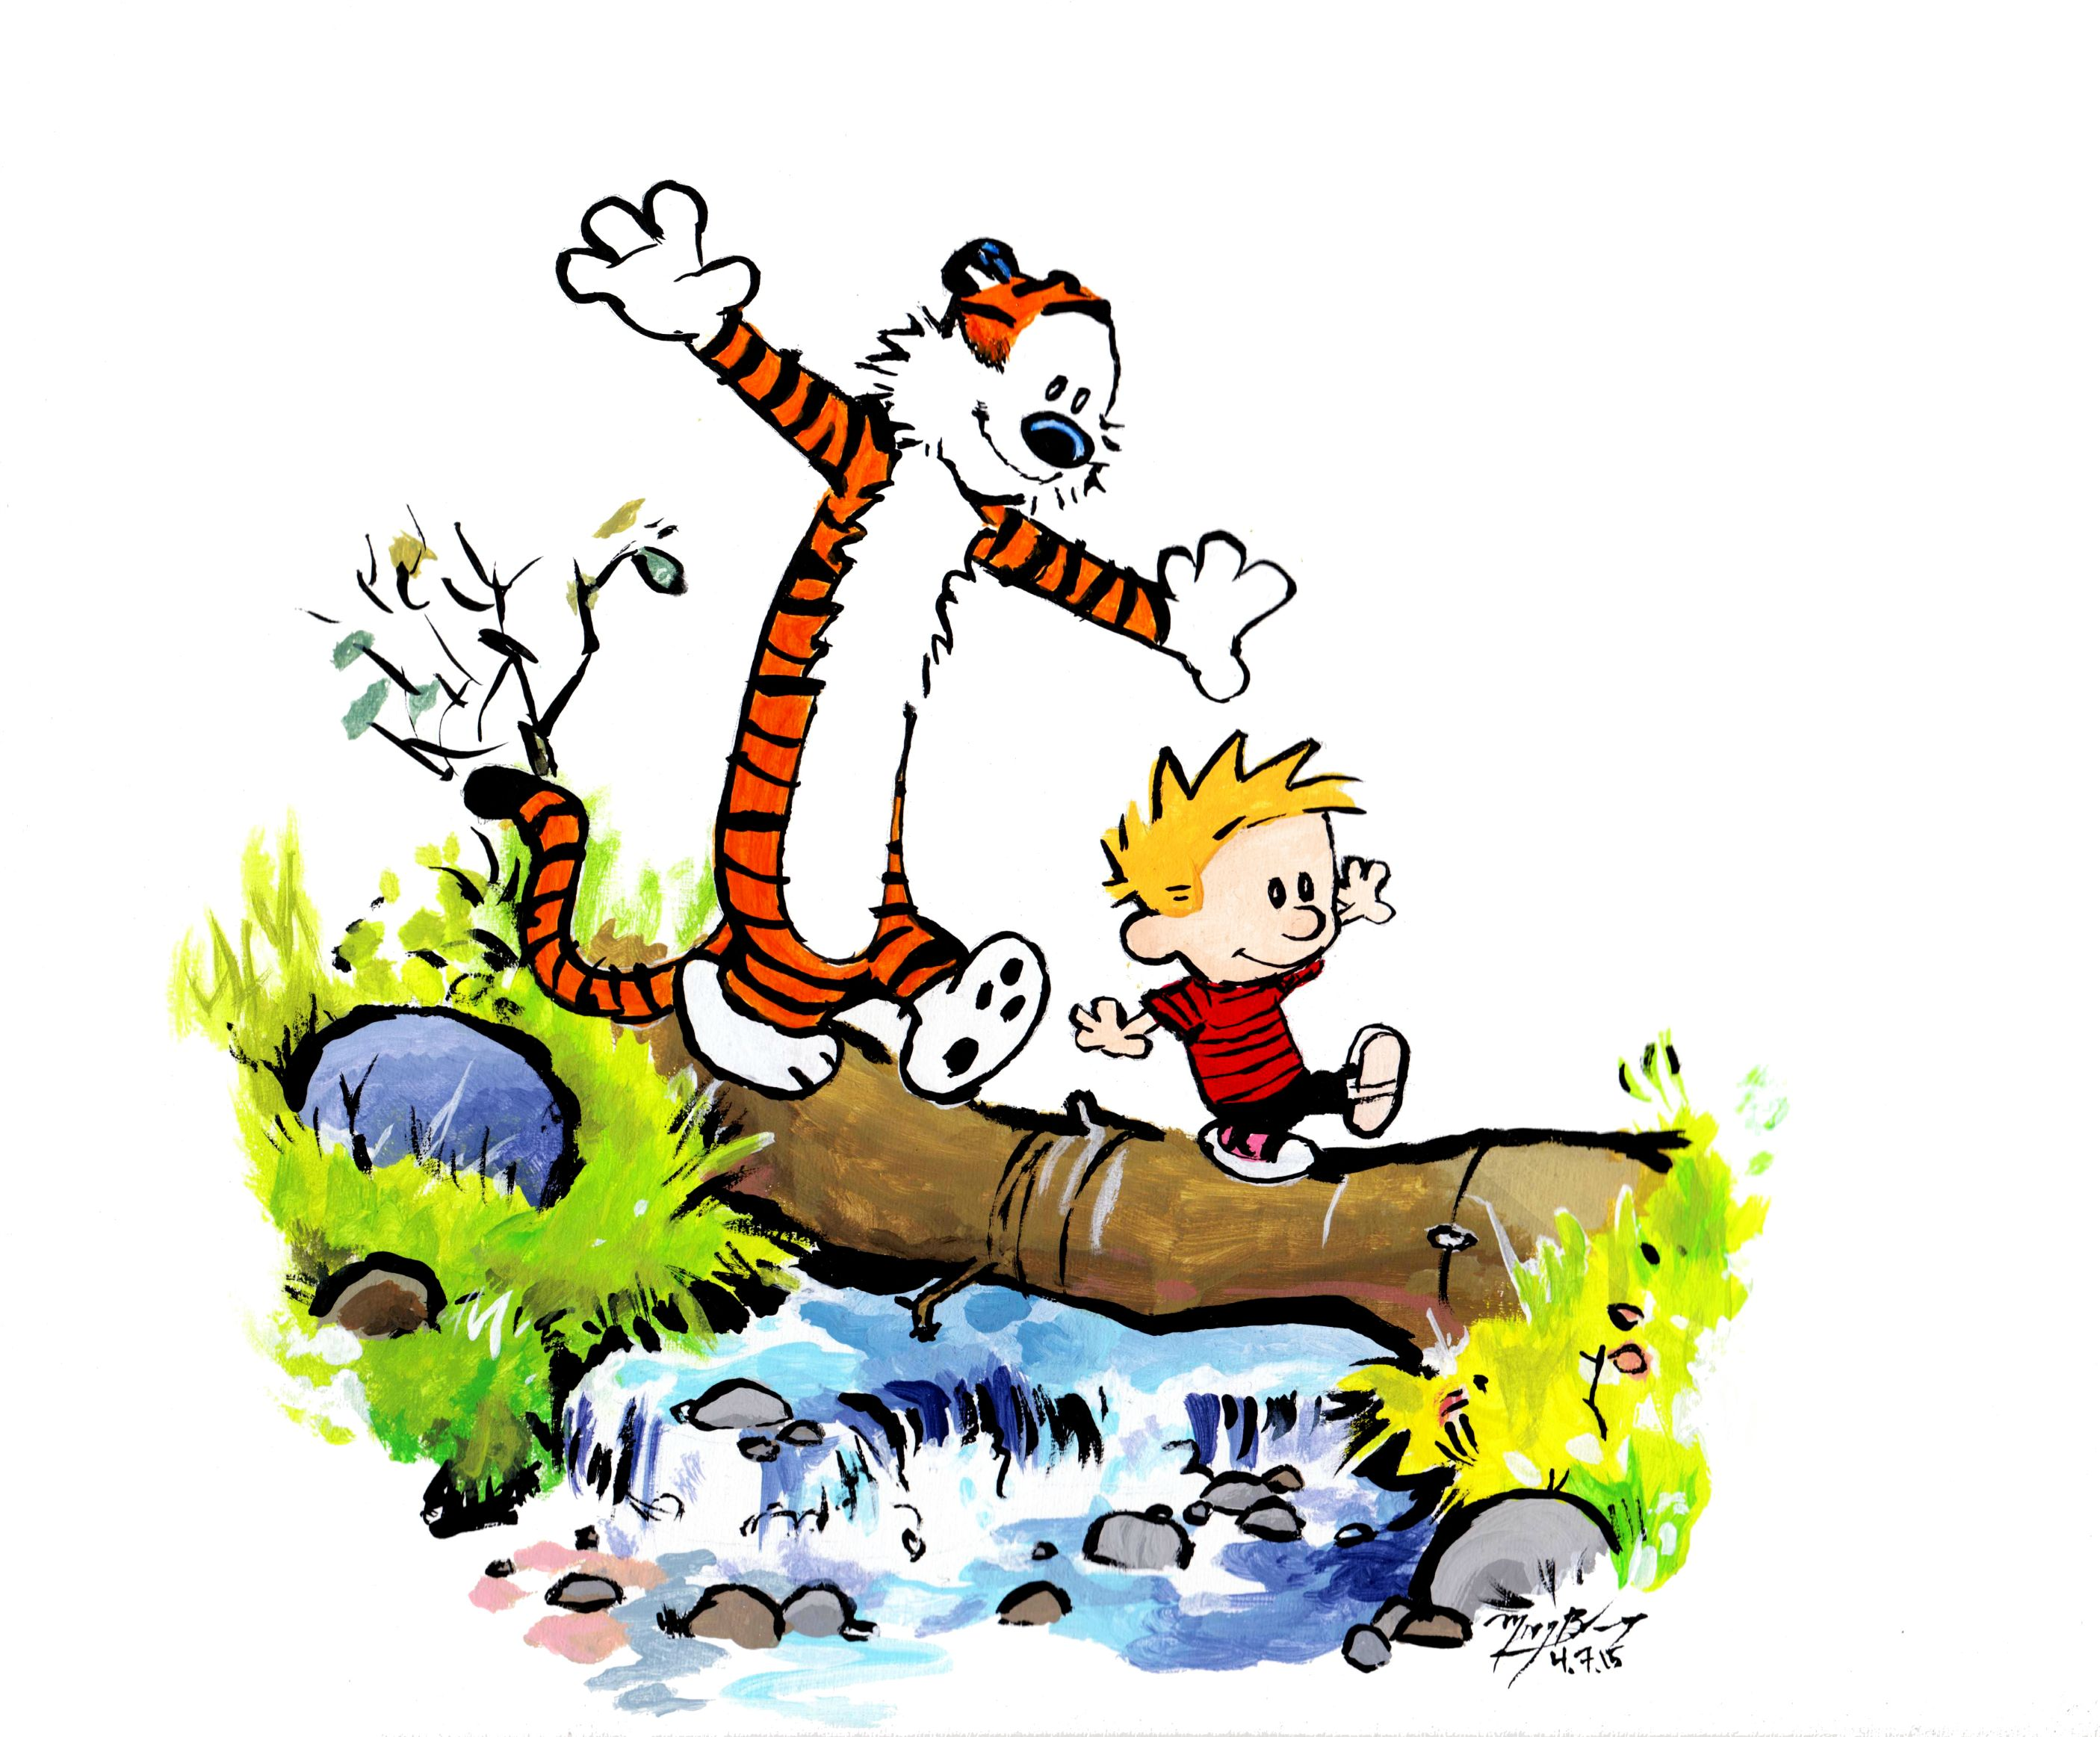 The cartoon characters Calvin & Hobbes